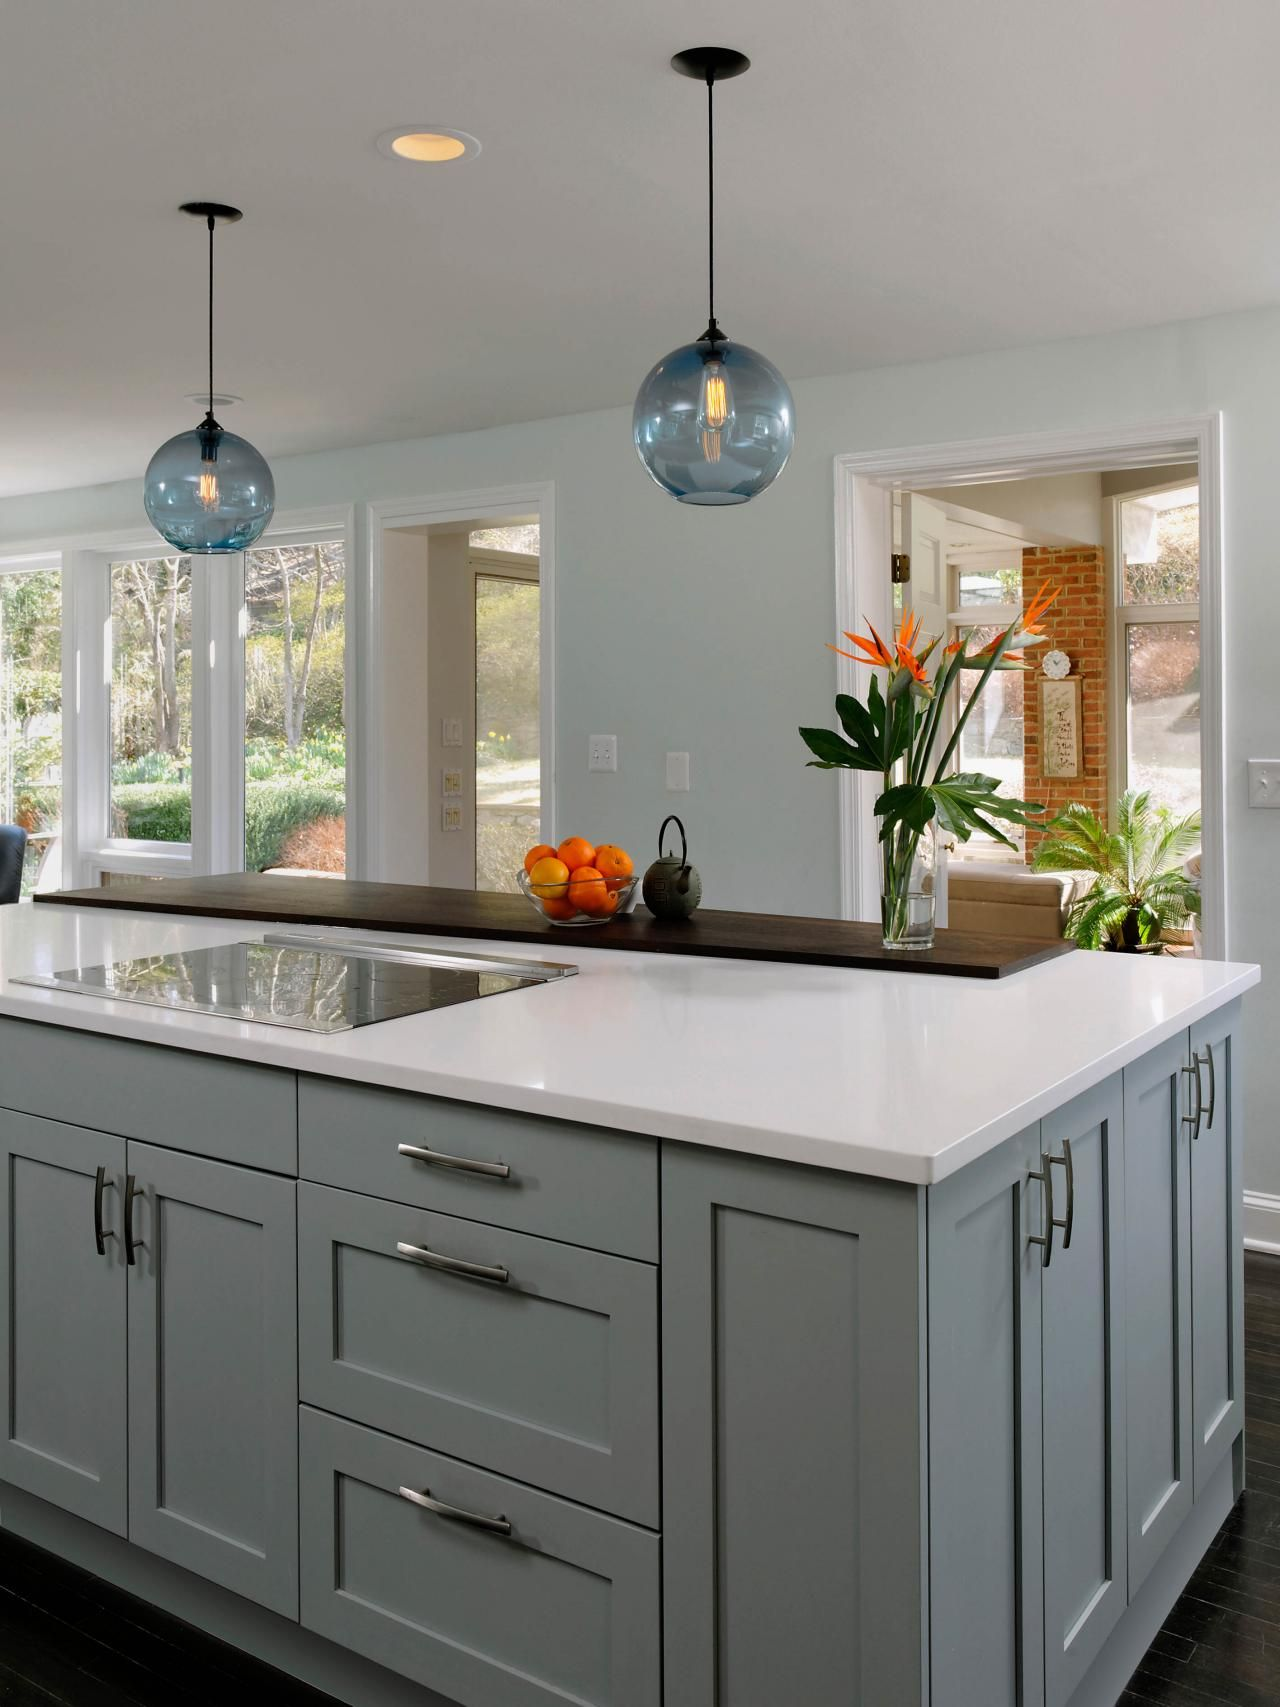 Color Ideas For Painting Kitchen Cabinets  Hgtv Pictures  Hgtv Adorable Kitchen Island Cabinet Design Inspiration